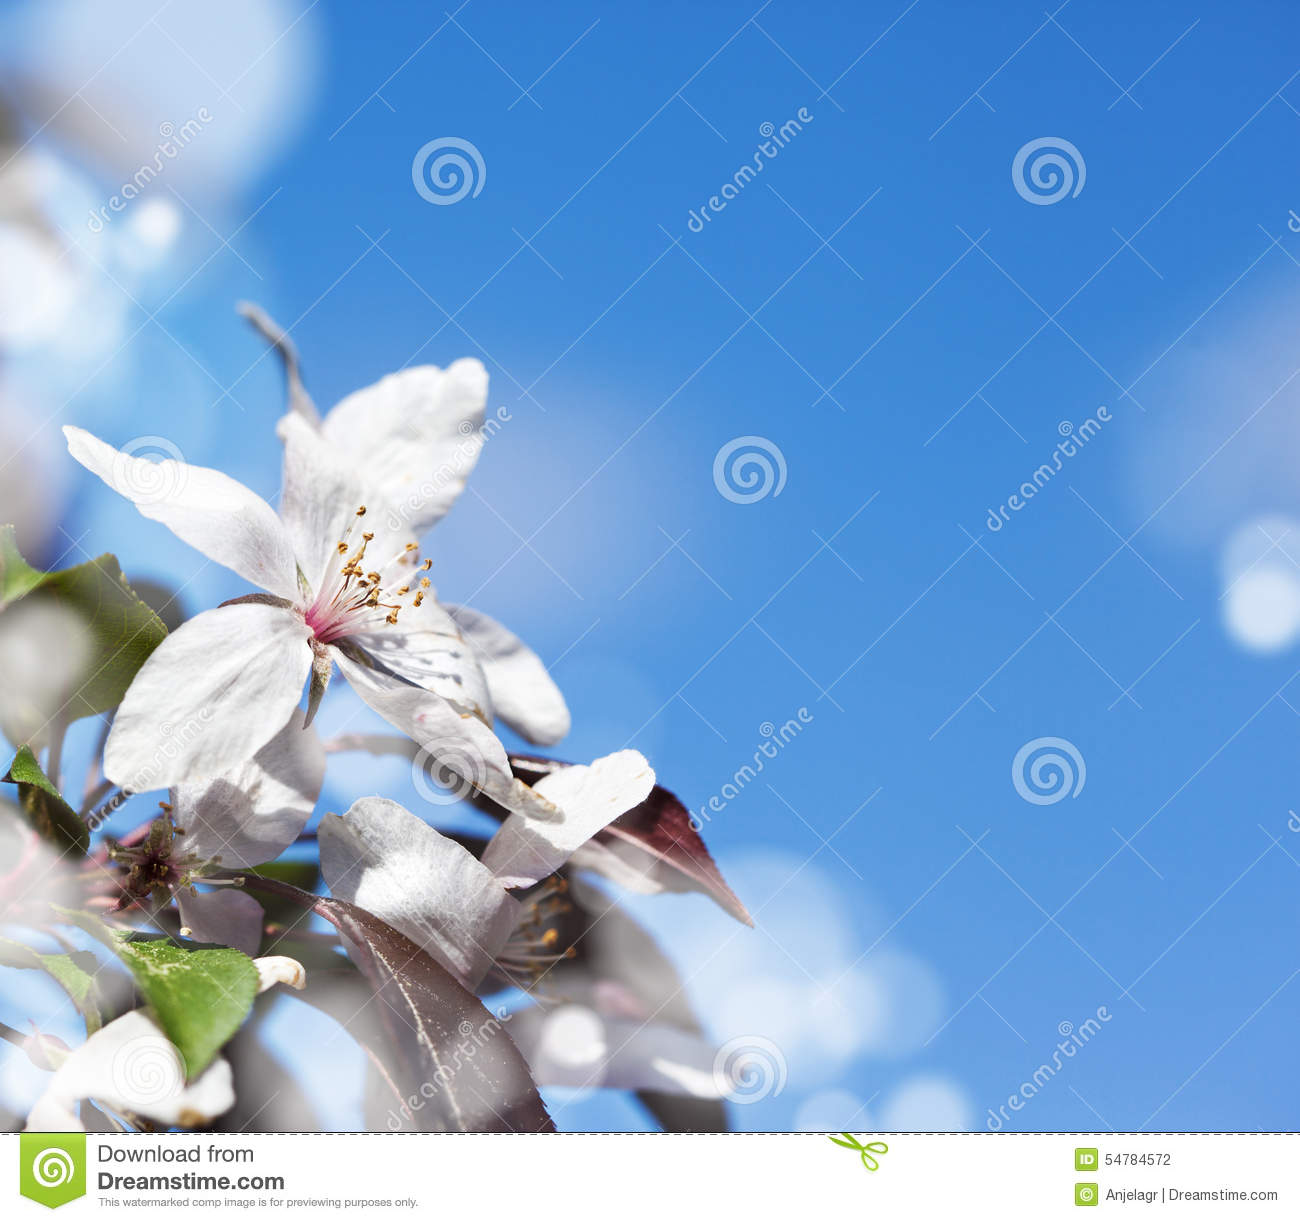 Spring cherry white flower on blue sky background copy space for text